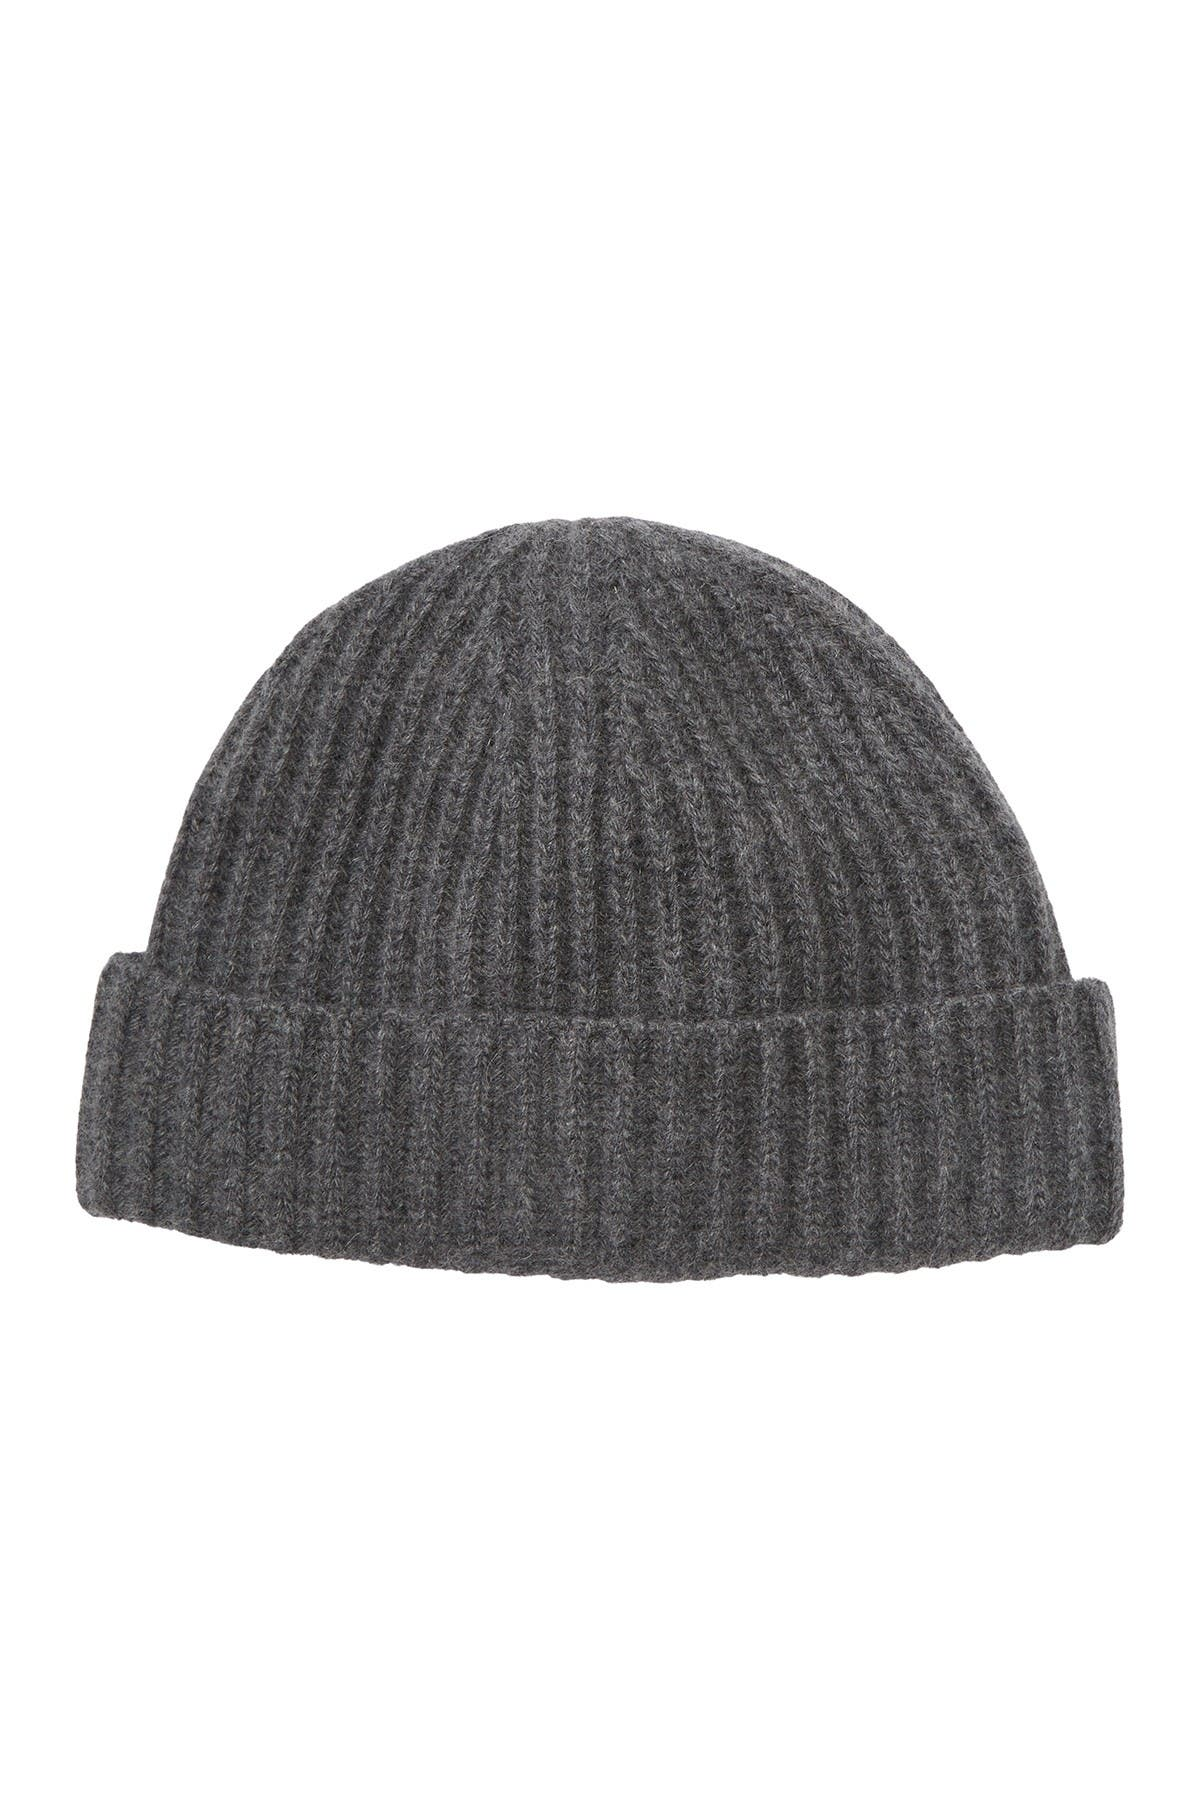 Image of Portolano Cashmere Ribbed Cuffed Beanie